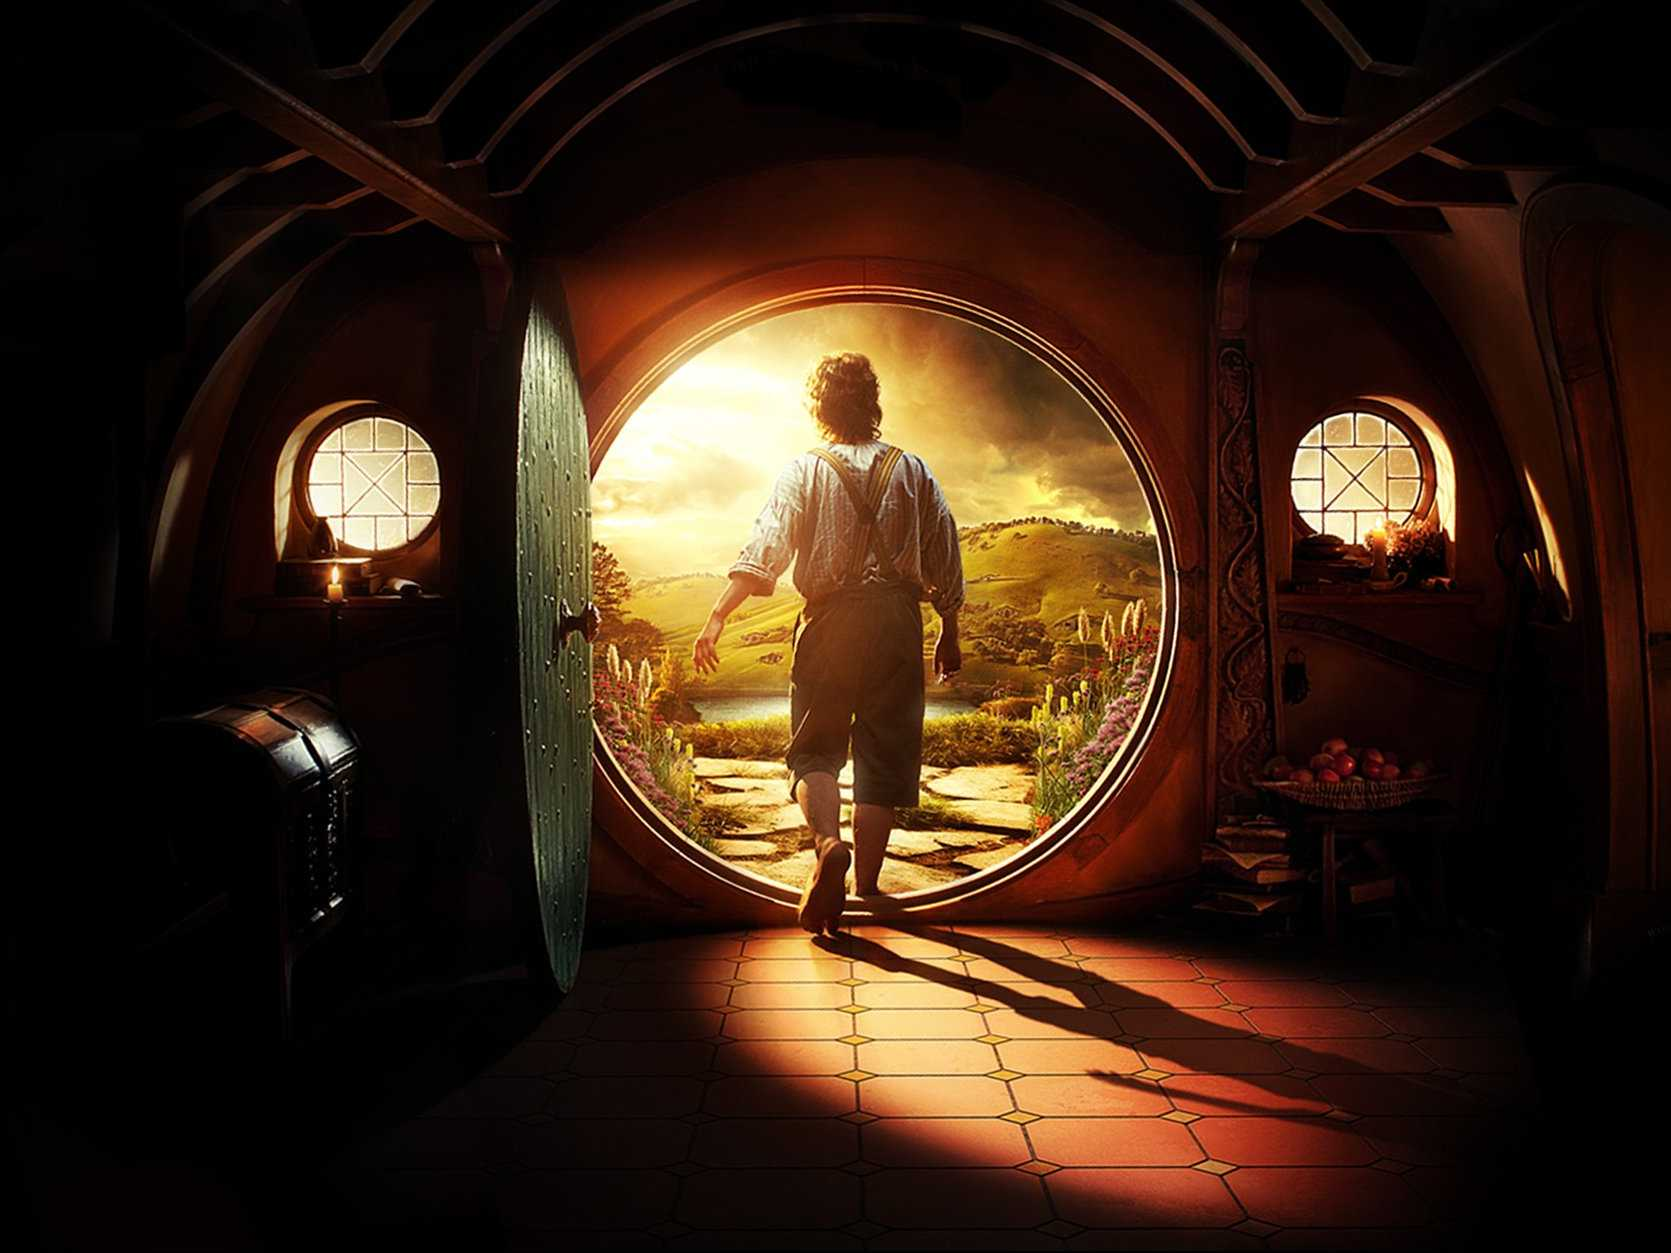 high-tech-sound-and-video-make-the-hobbit-incredibly-immersive